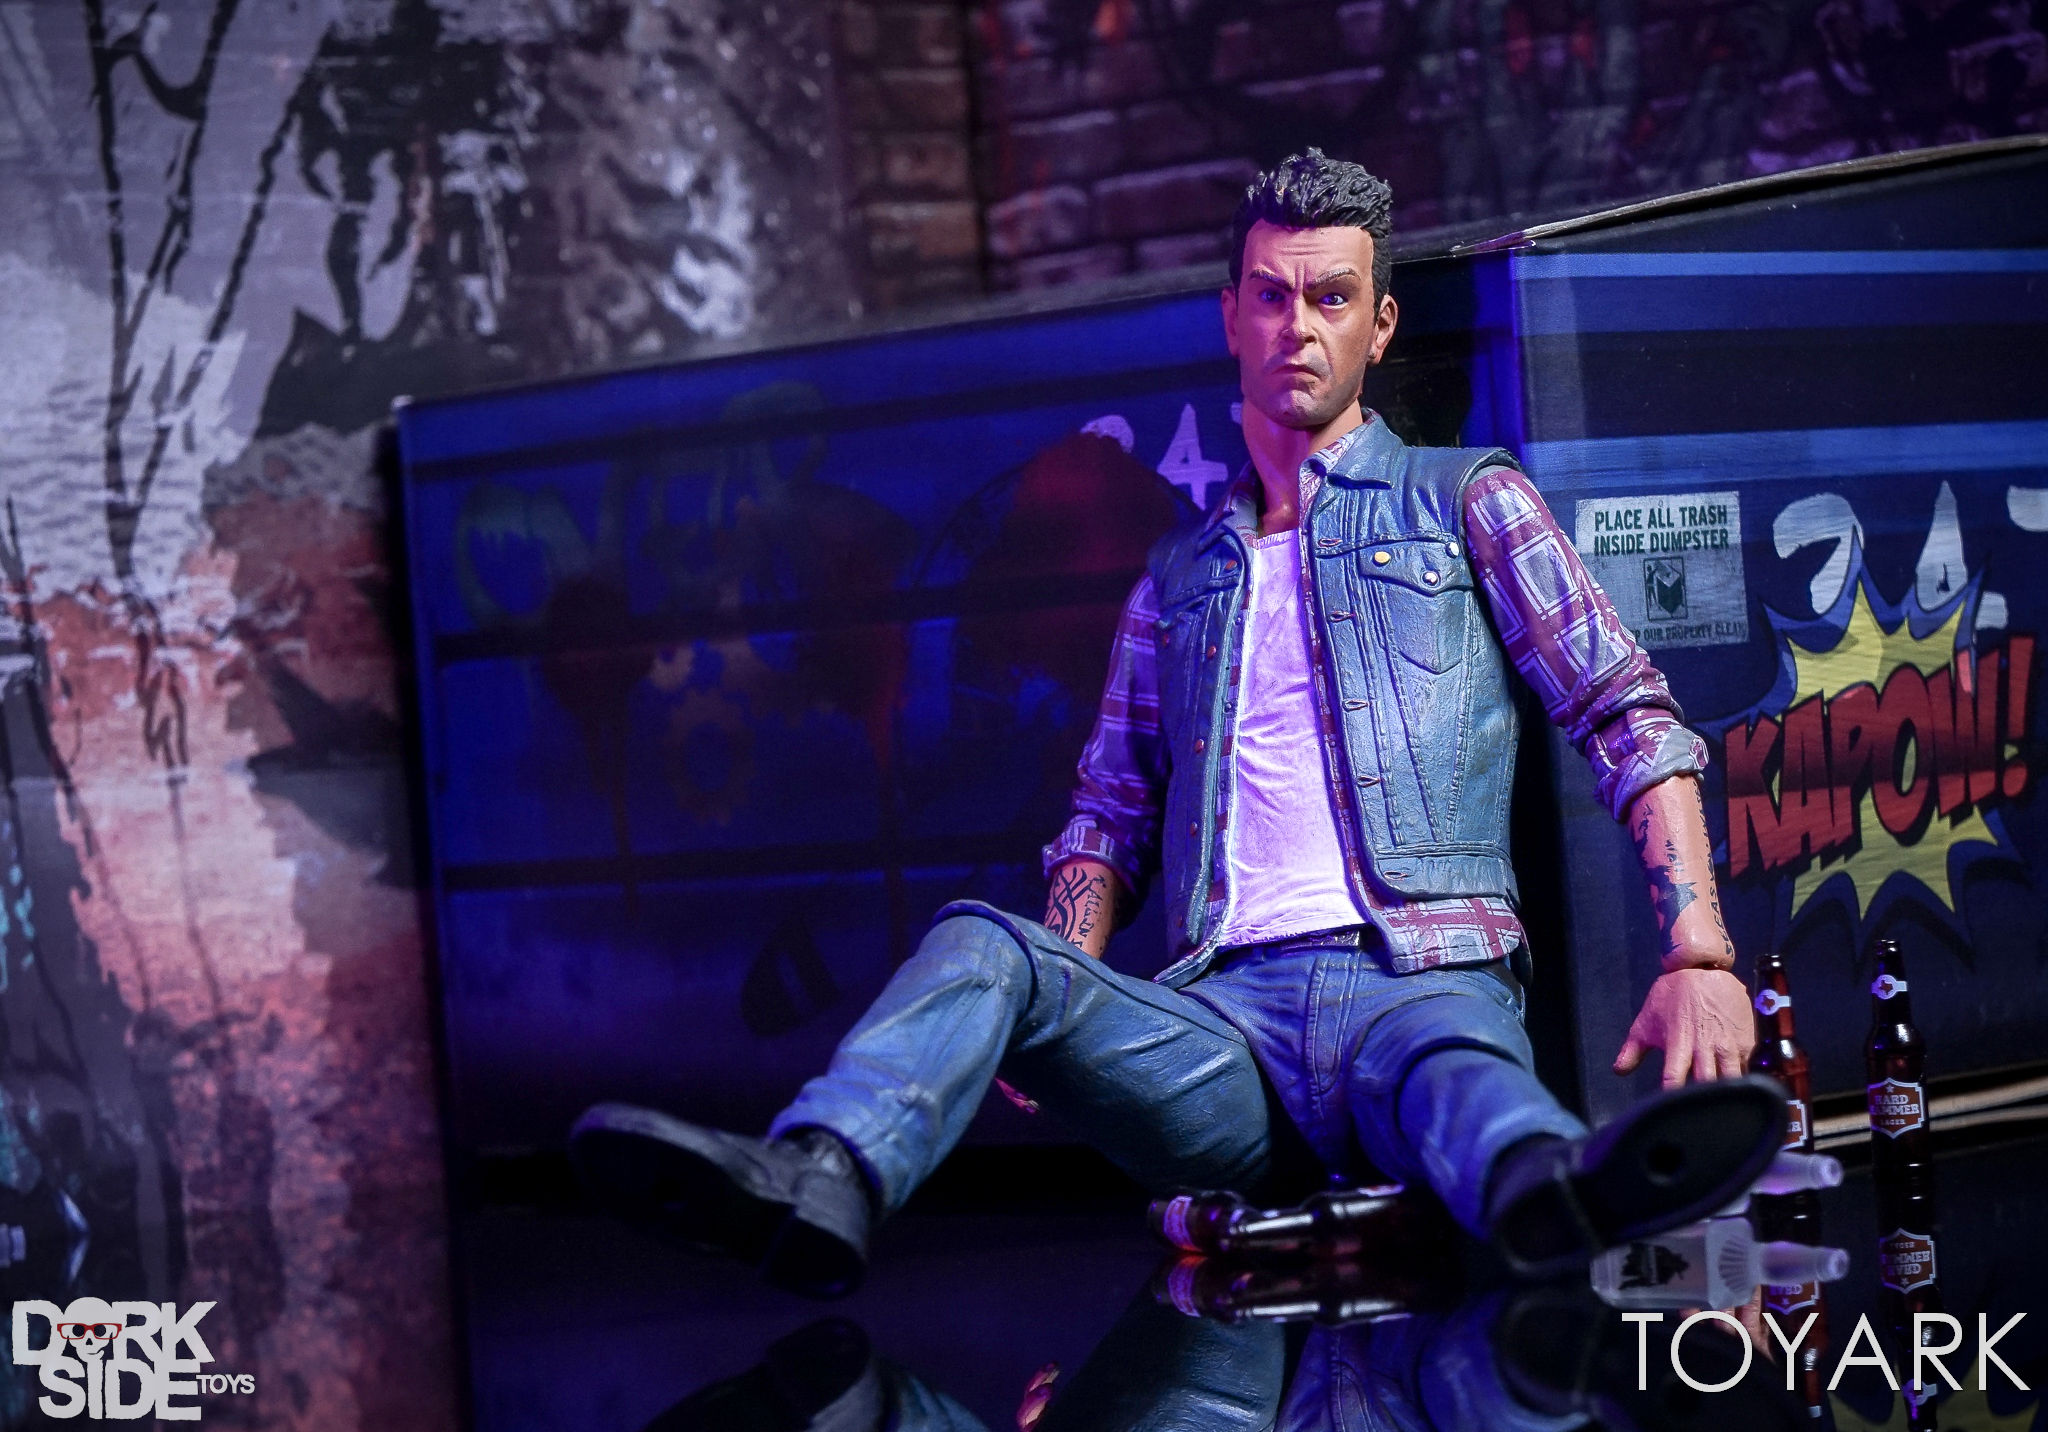 http://news.toyark.com/wp-content/uploads/sites/4/2017/05/NECA-Preacher-Figures-038.jpg